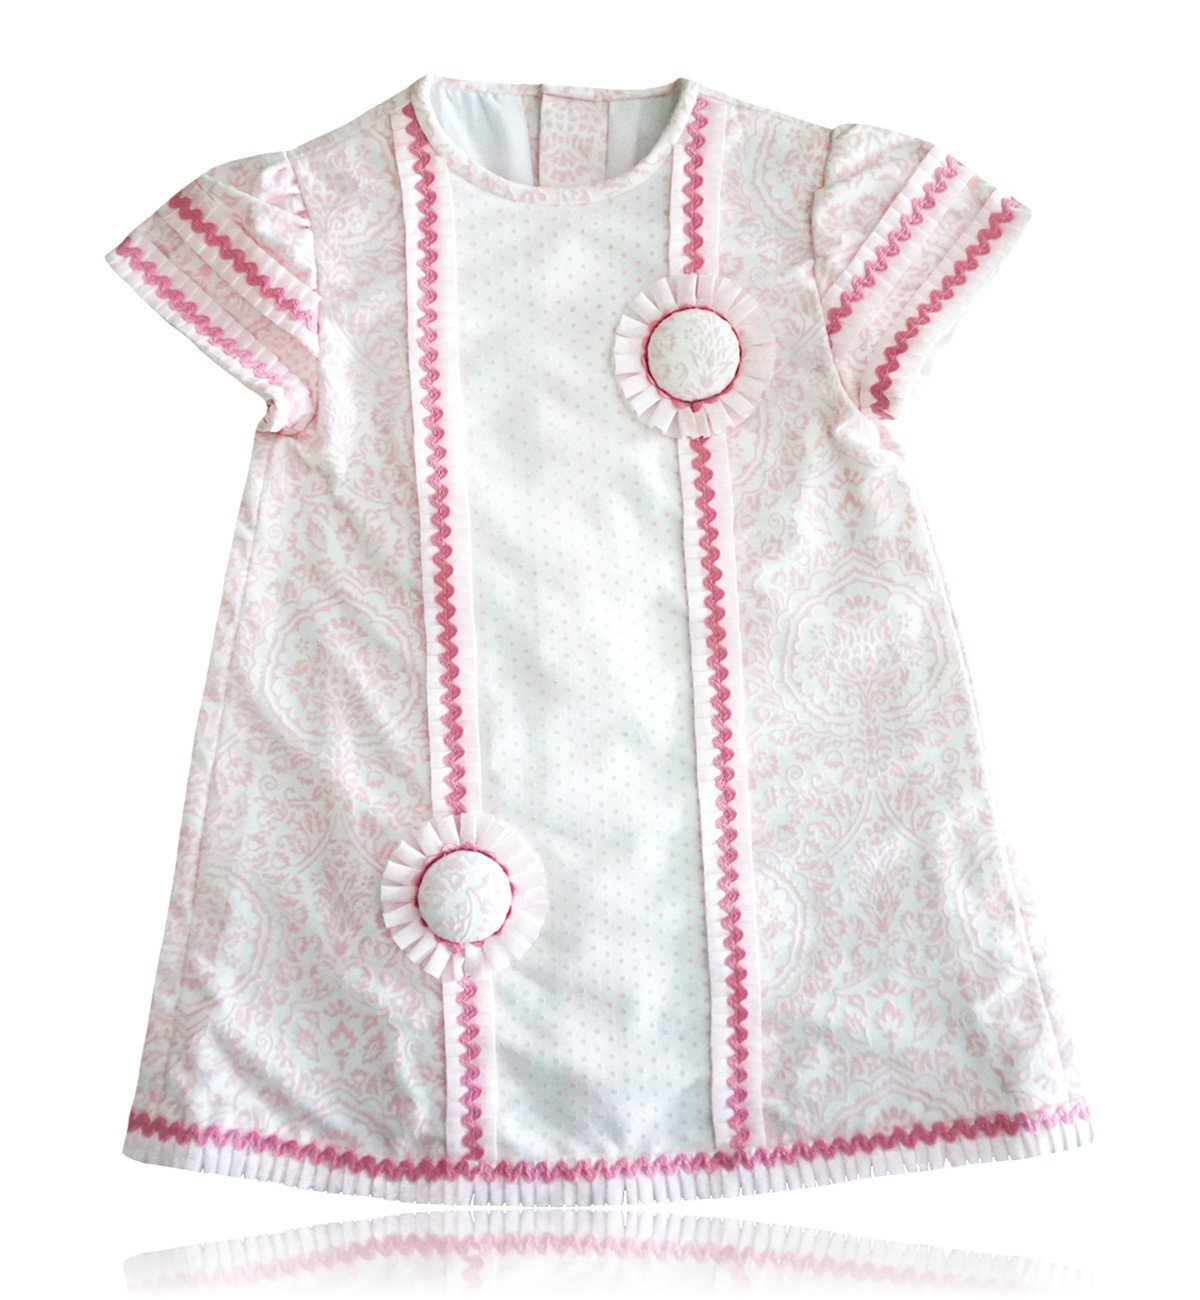 Spanish baby clothes | baby Dress | Pink and white dress |babymaC  - 1